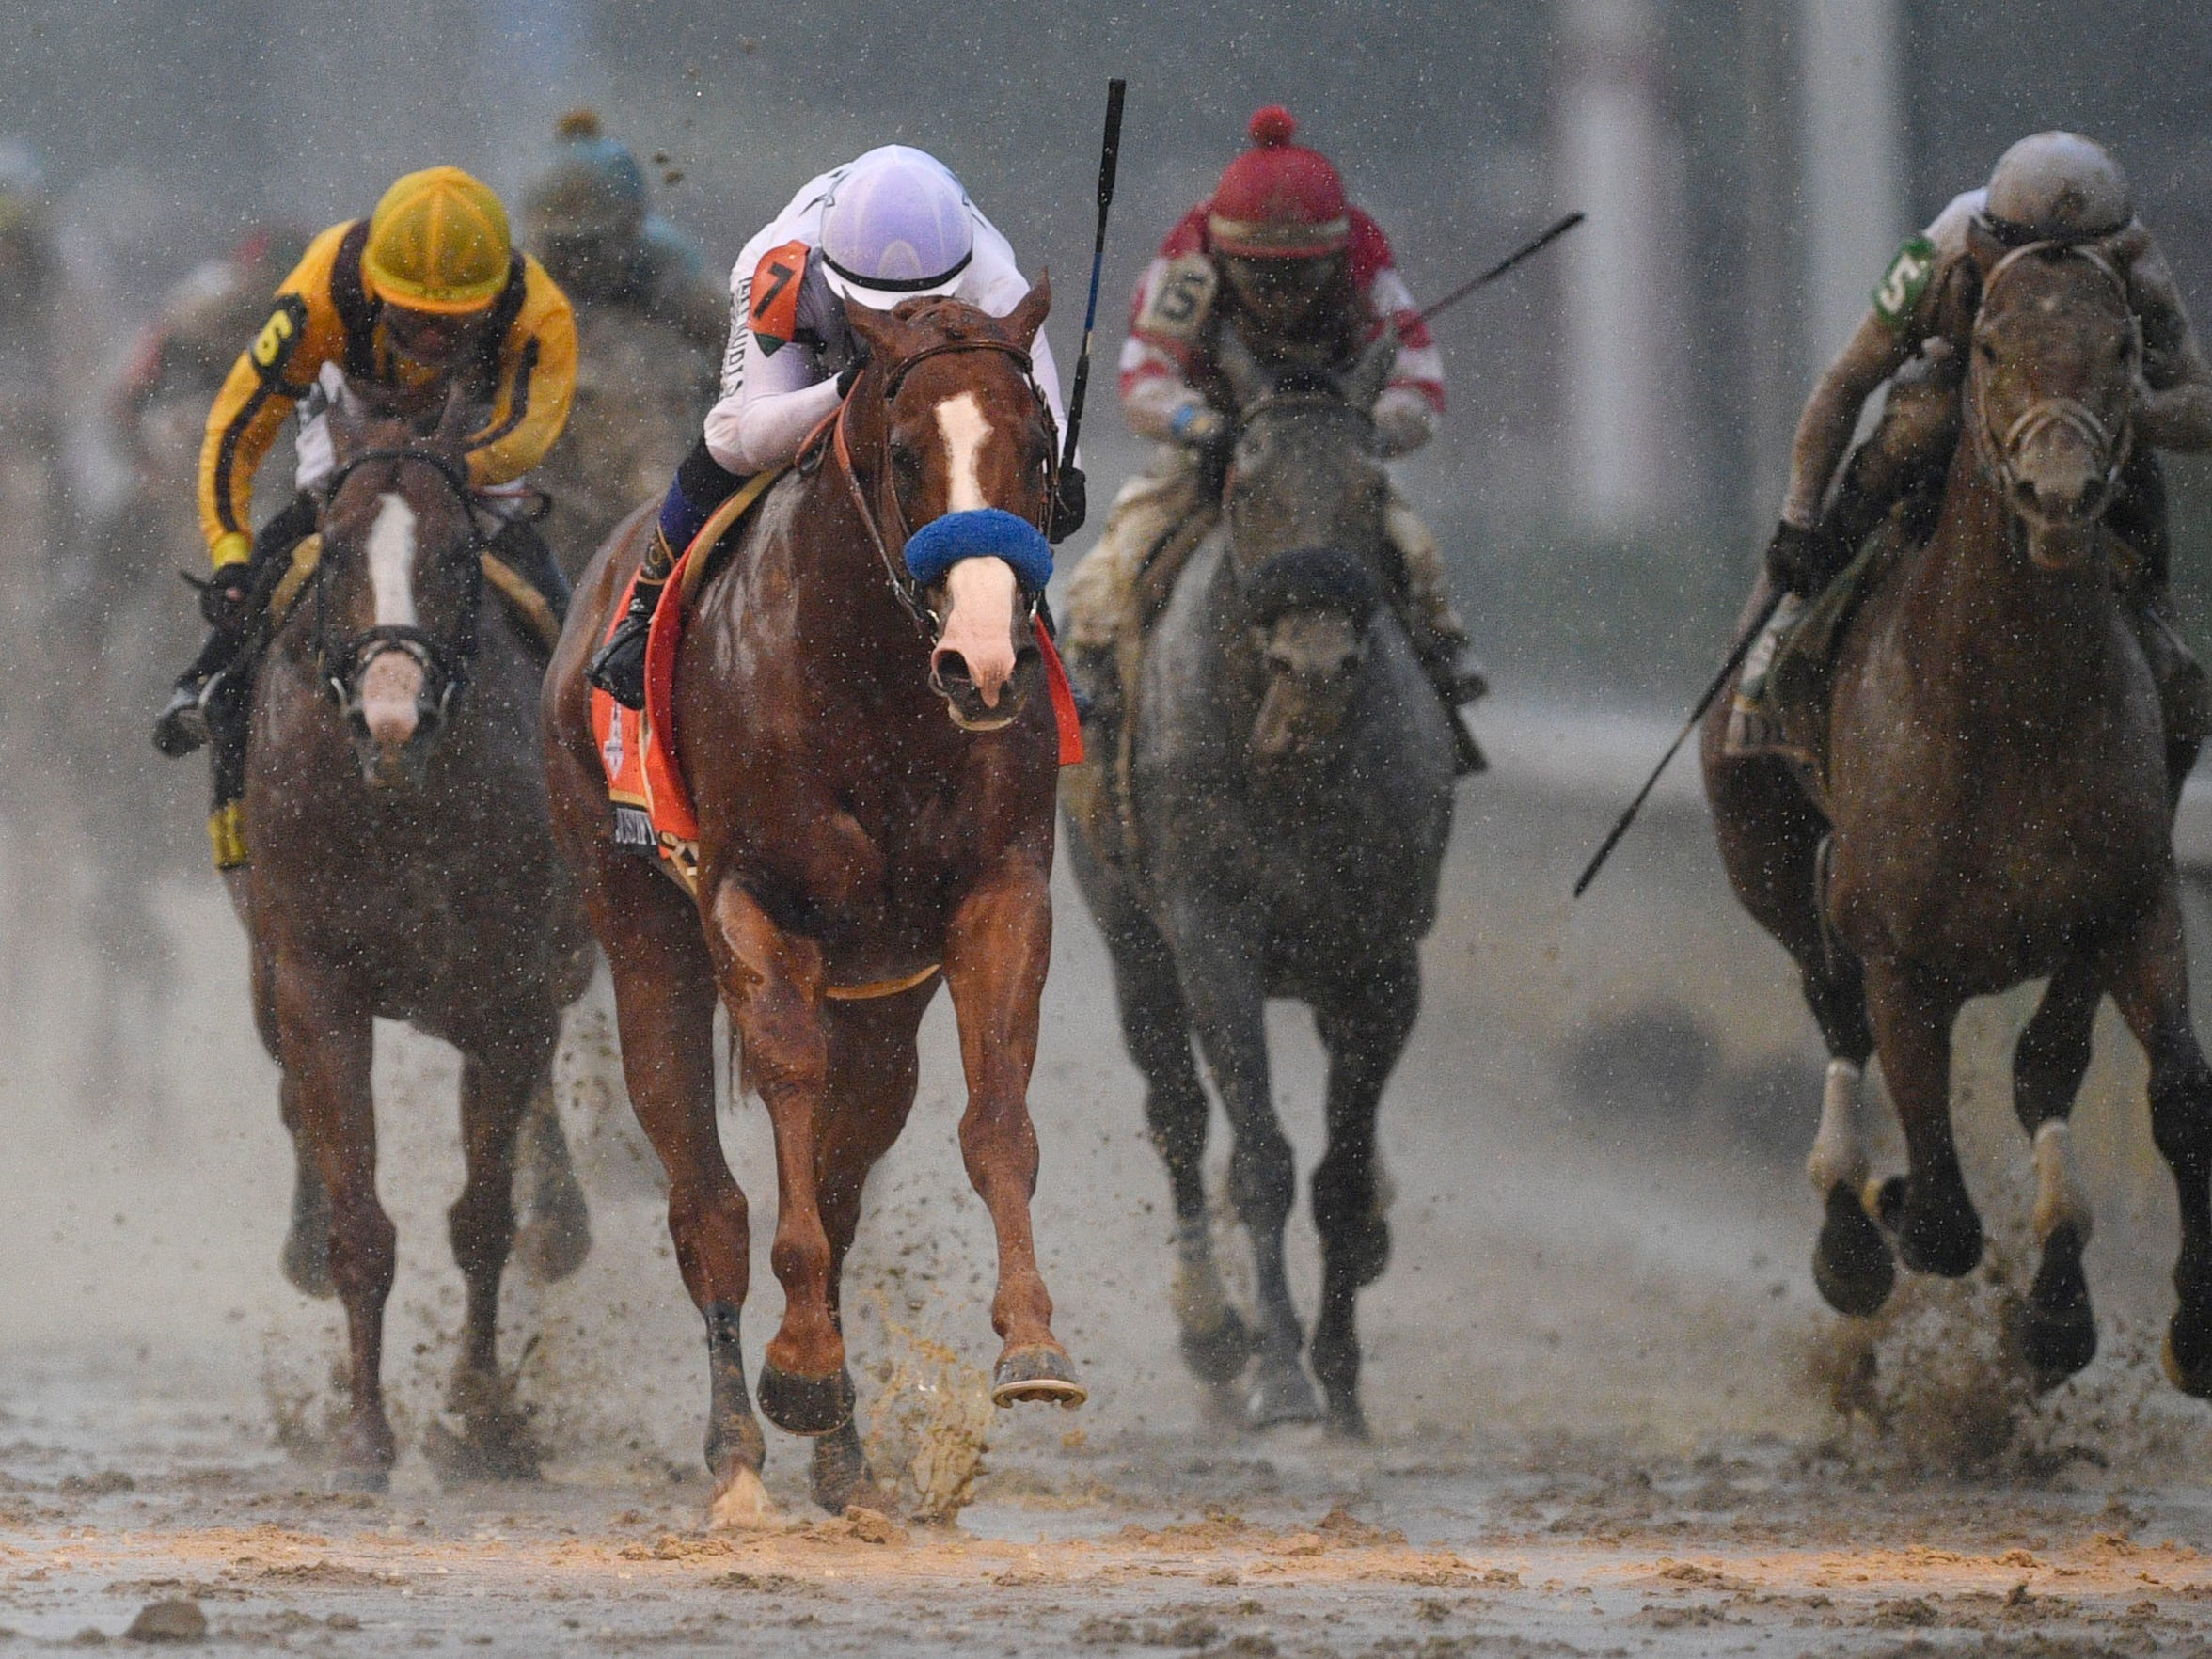 Nearly $385 million was wagered on horse and dog racing in Texas in 2017.